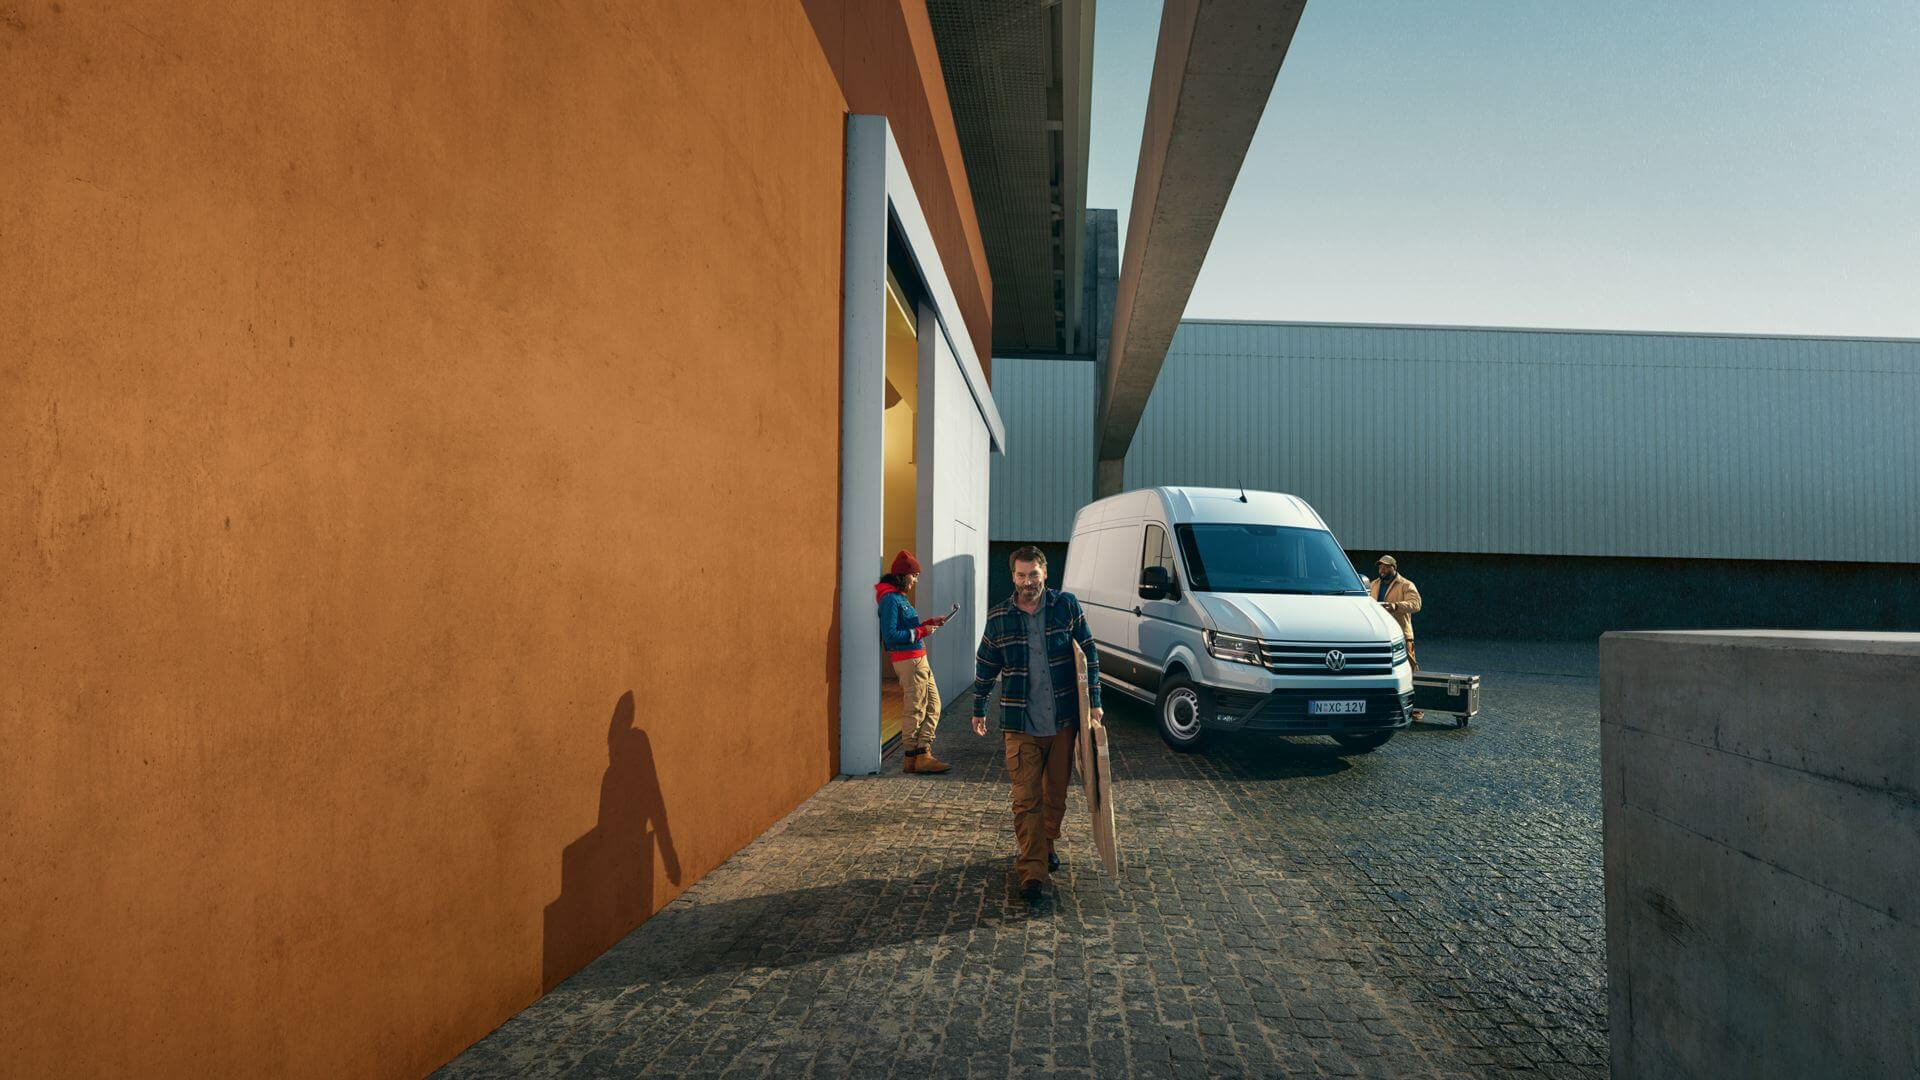 Crafter Van <strong>Crafter Van</strong><br>Great for business